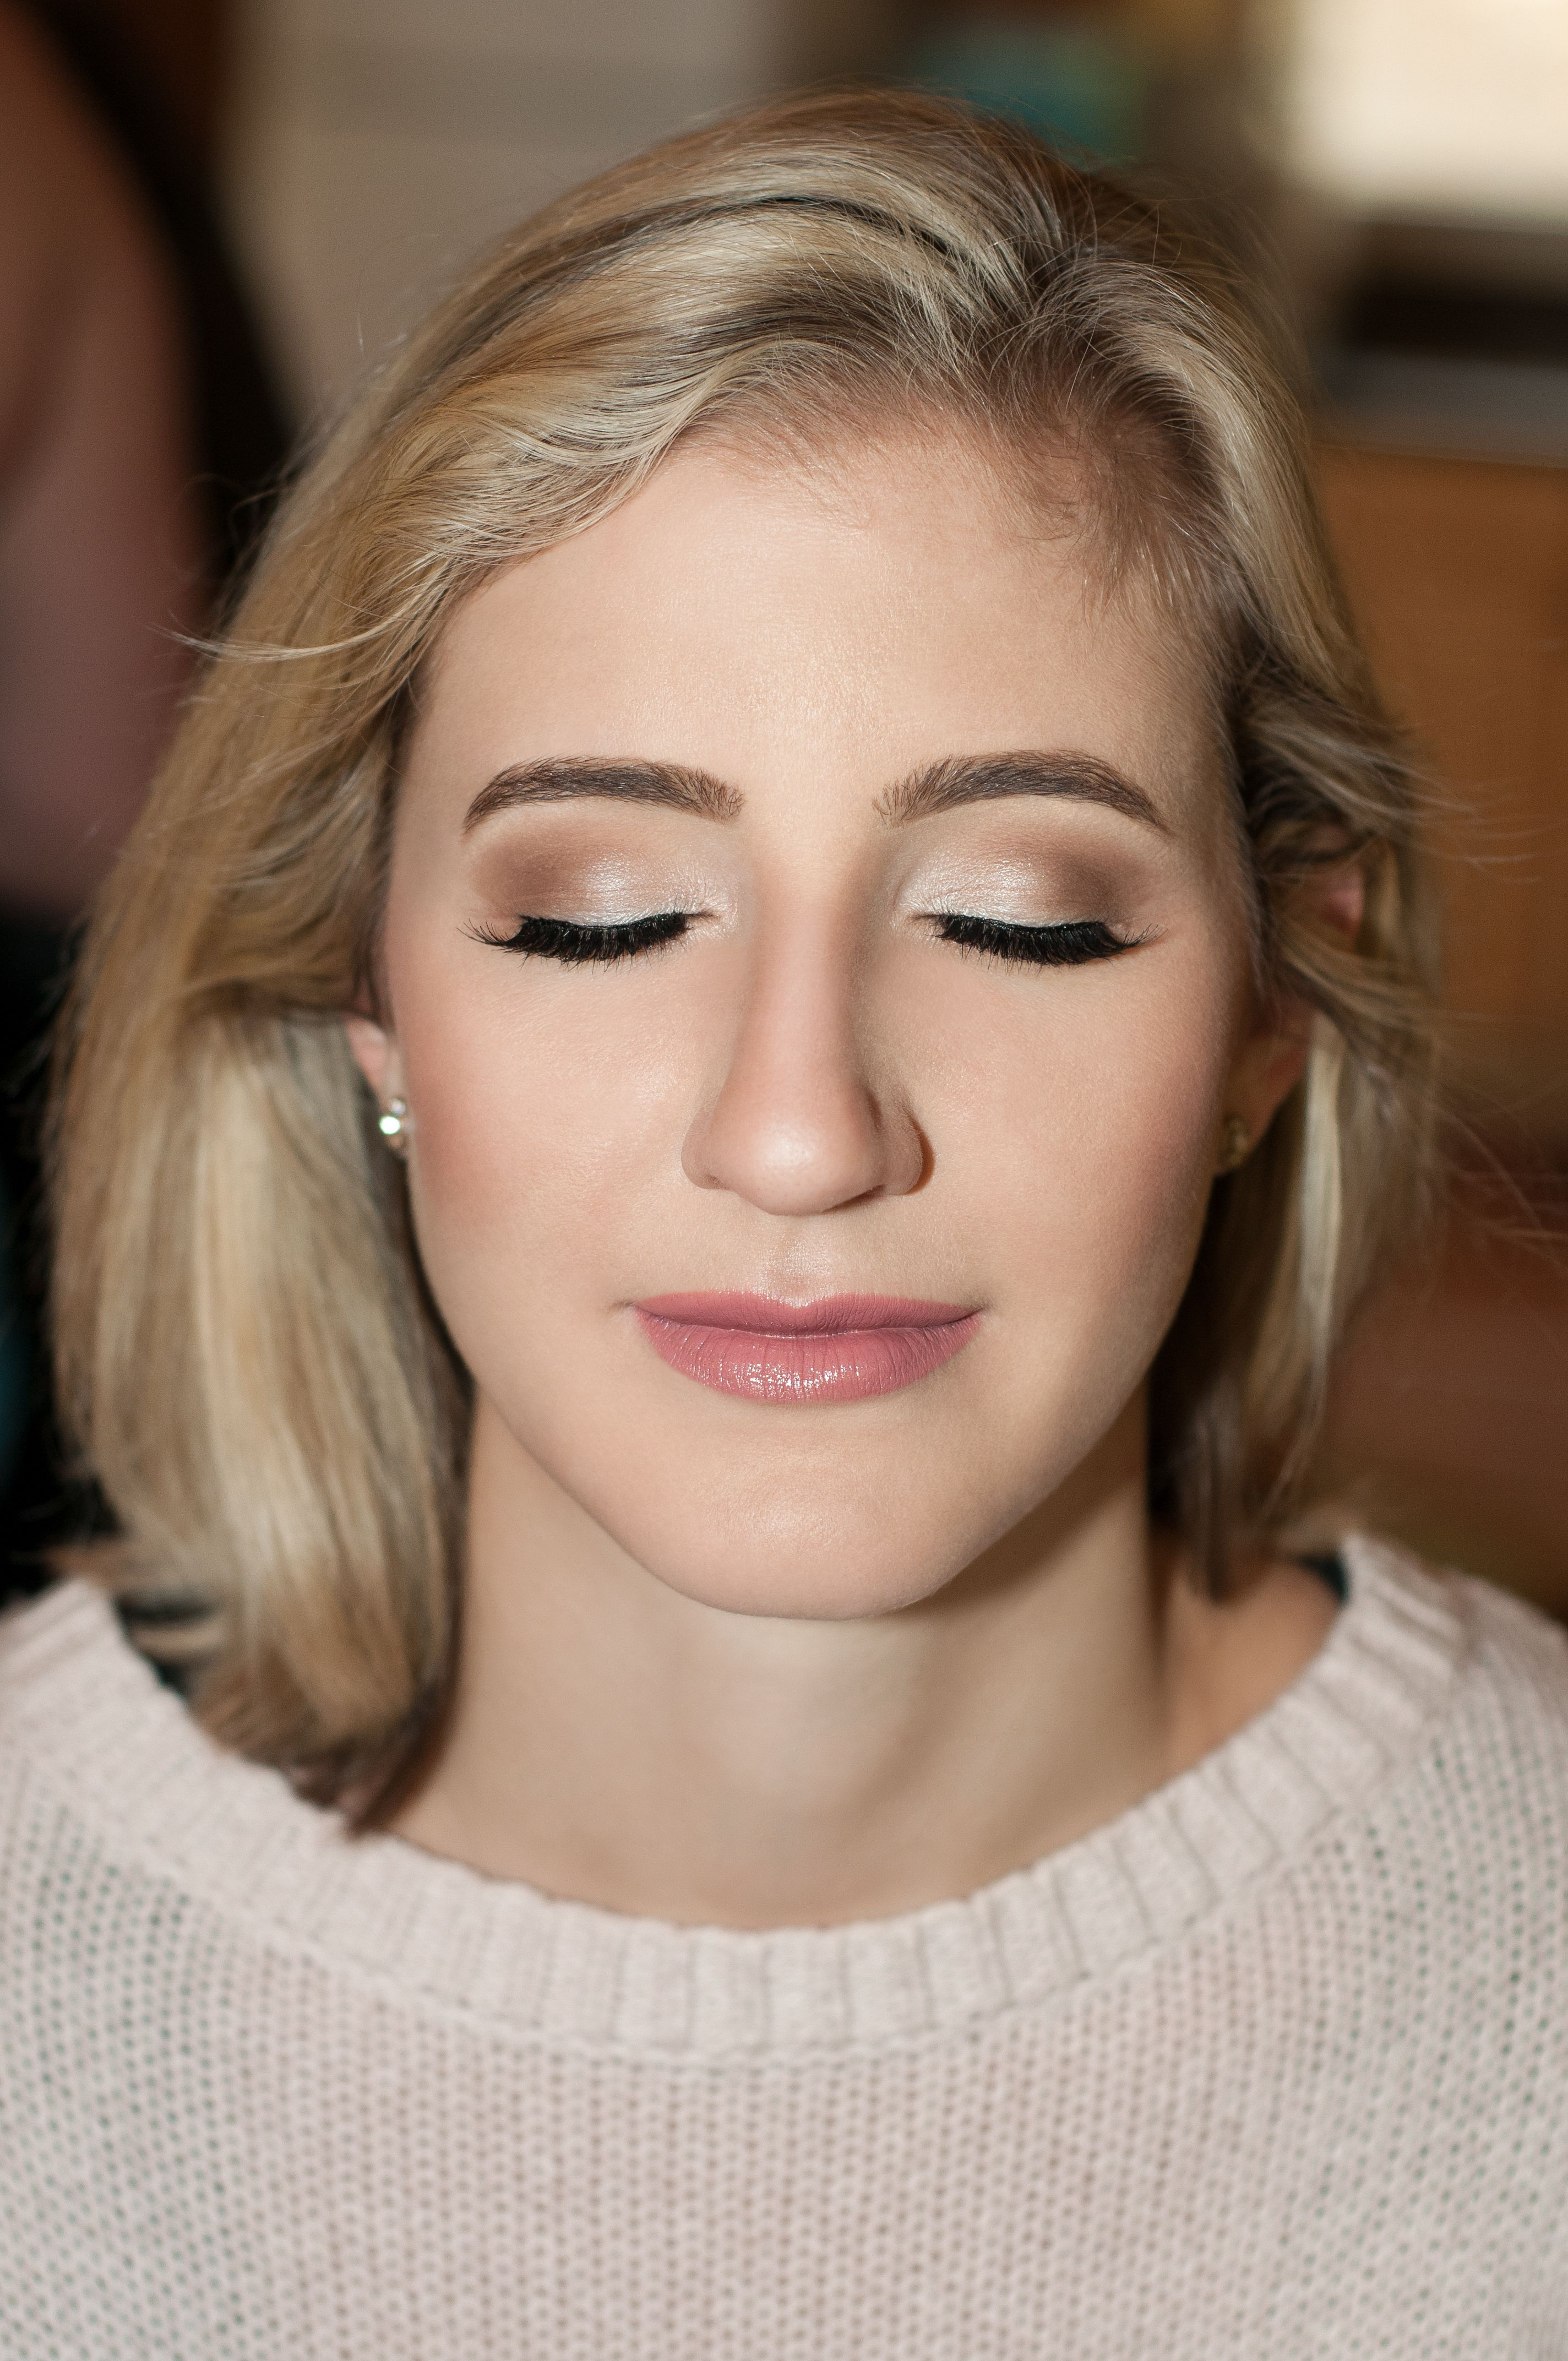 Bridal Make Up With Mac Eyeshadows And Mac Lipstick In Faux